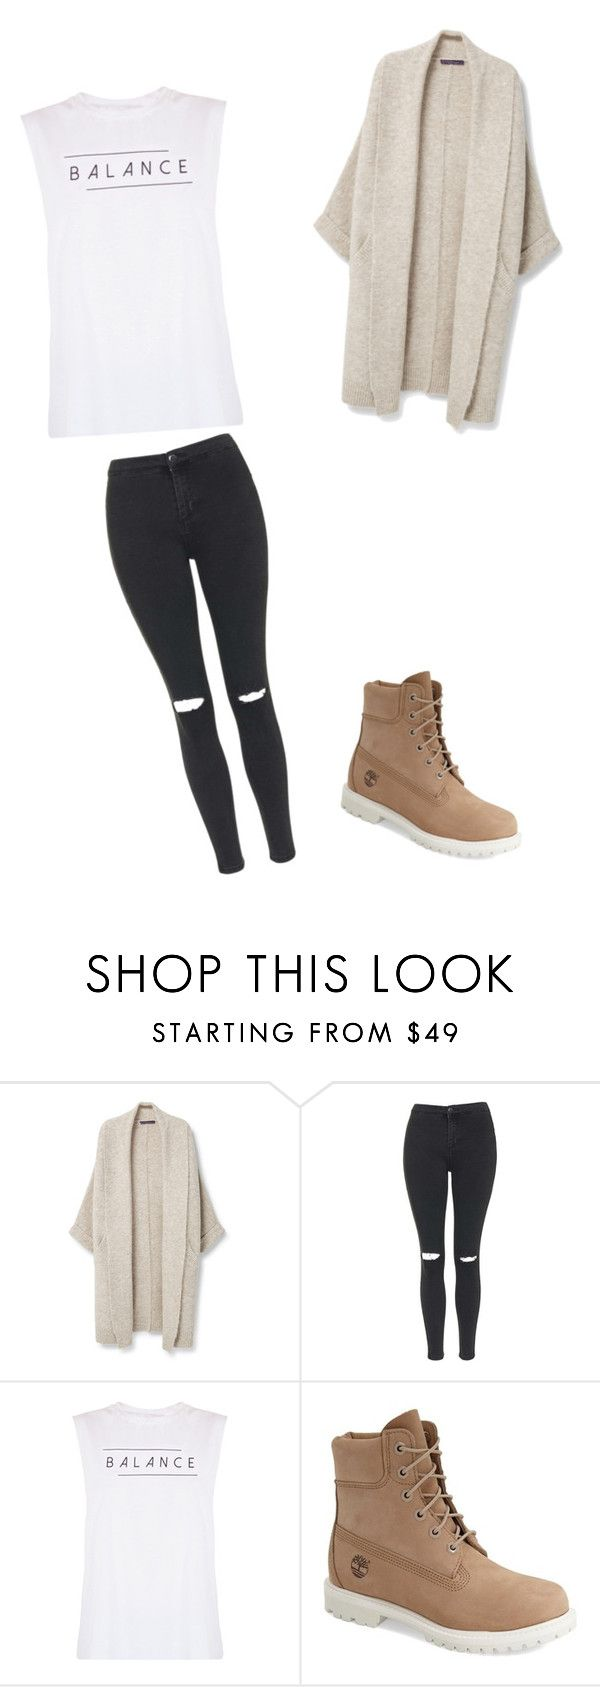 """""""Untitled #246"""" by eva011 ❤ liked on Polyvore featuring MANGO, Topshop, good hYOUman and Timberland"""